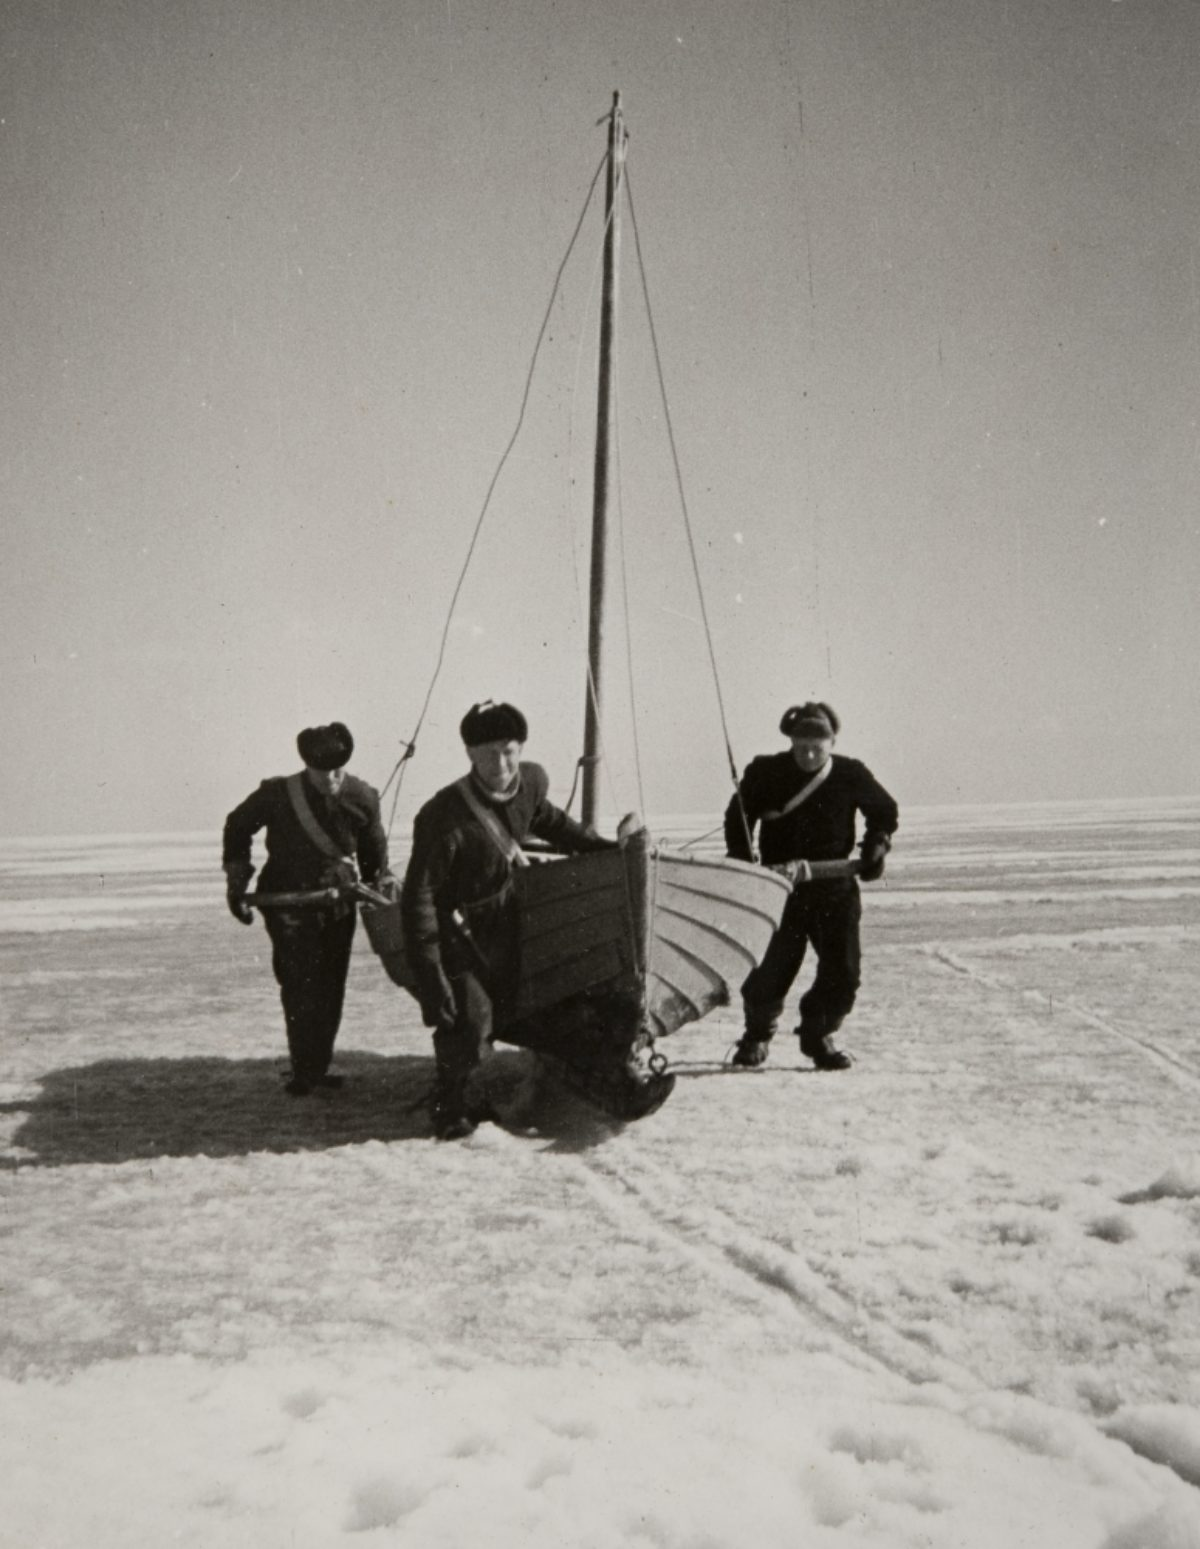 Seal hunters pulling their boat across ice in the Gulf of Finland, off the shores of Haapasaari. Photo: Jorma Jussilainen / Picture Collections of the Finnish Heritage Agency